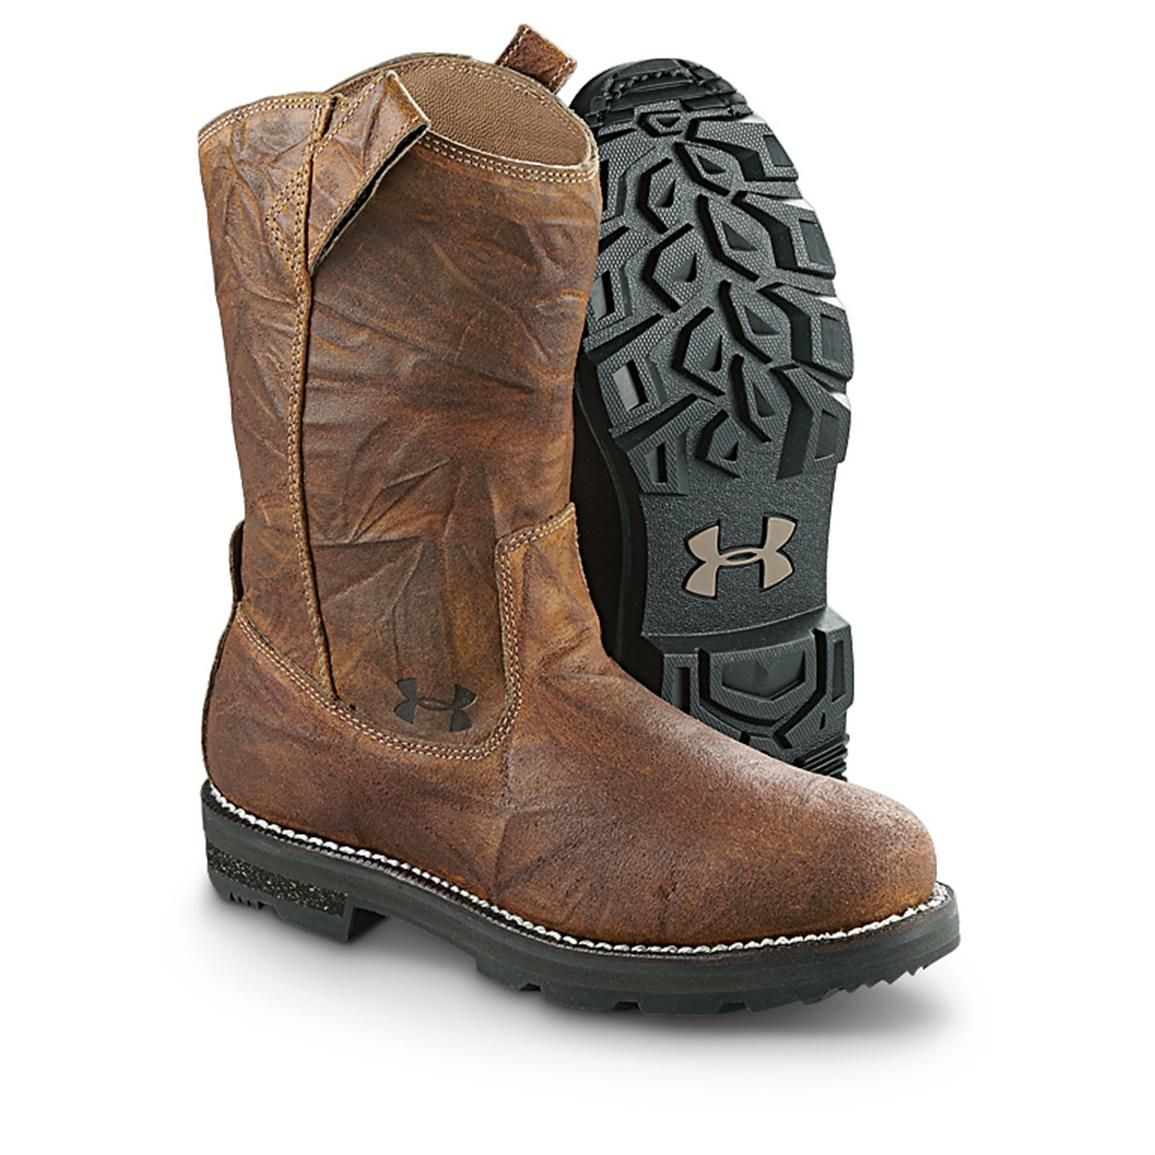 Men's Under Armour Tradesman Wellington Boots, Bootlegger - 592639, Cowboy  & Western Boots at Sportsman's Guide